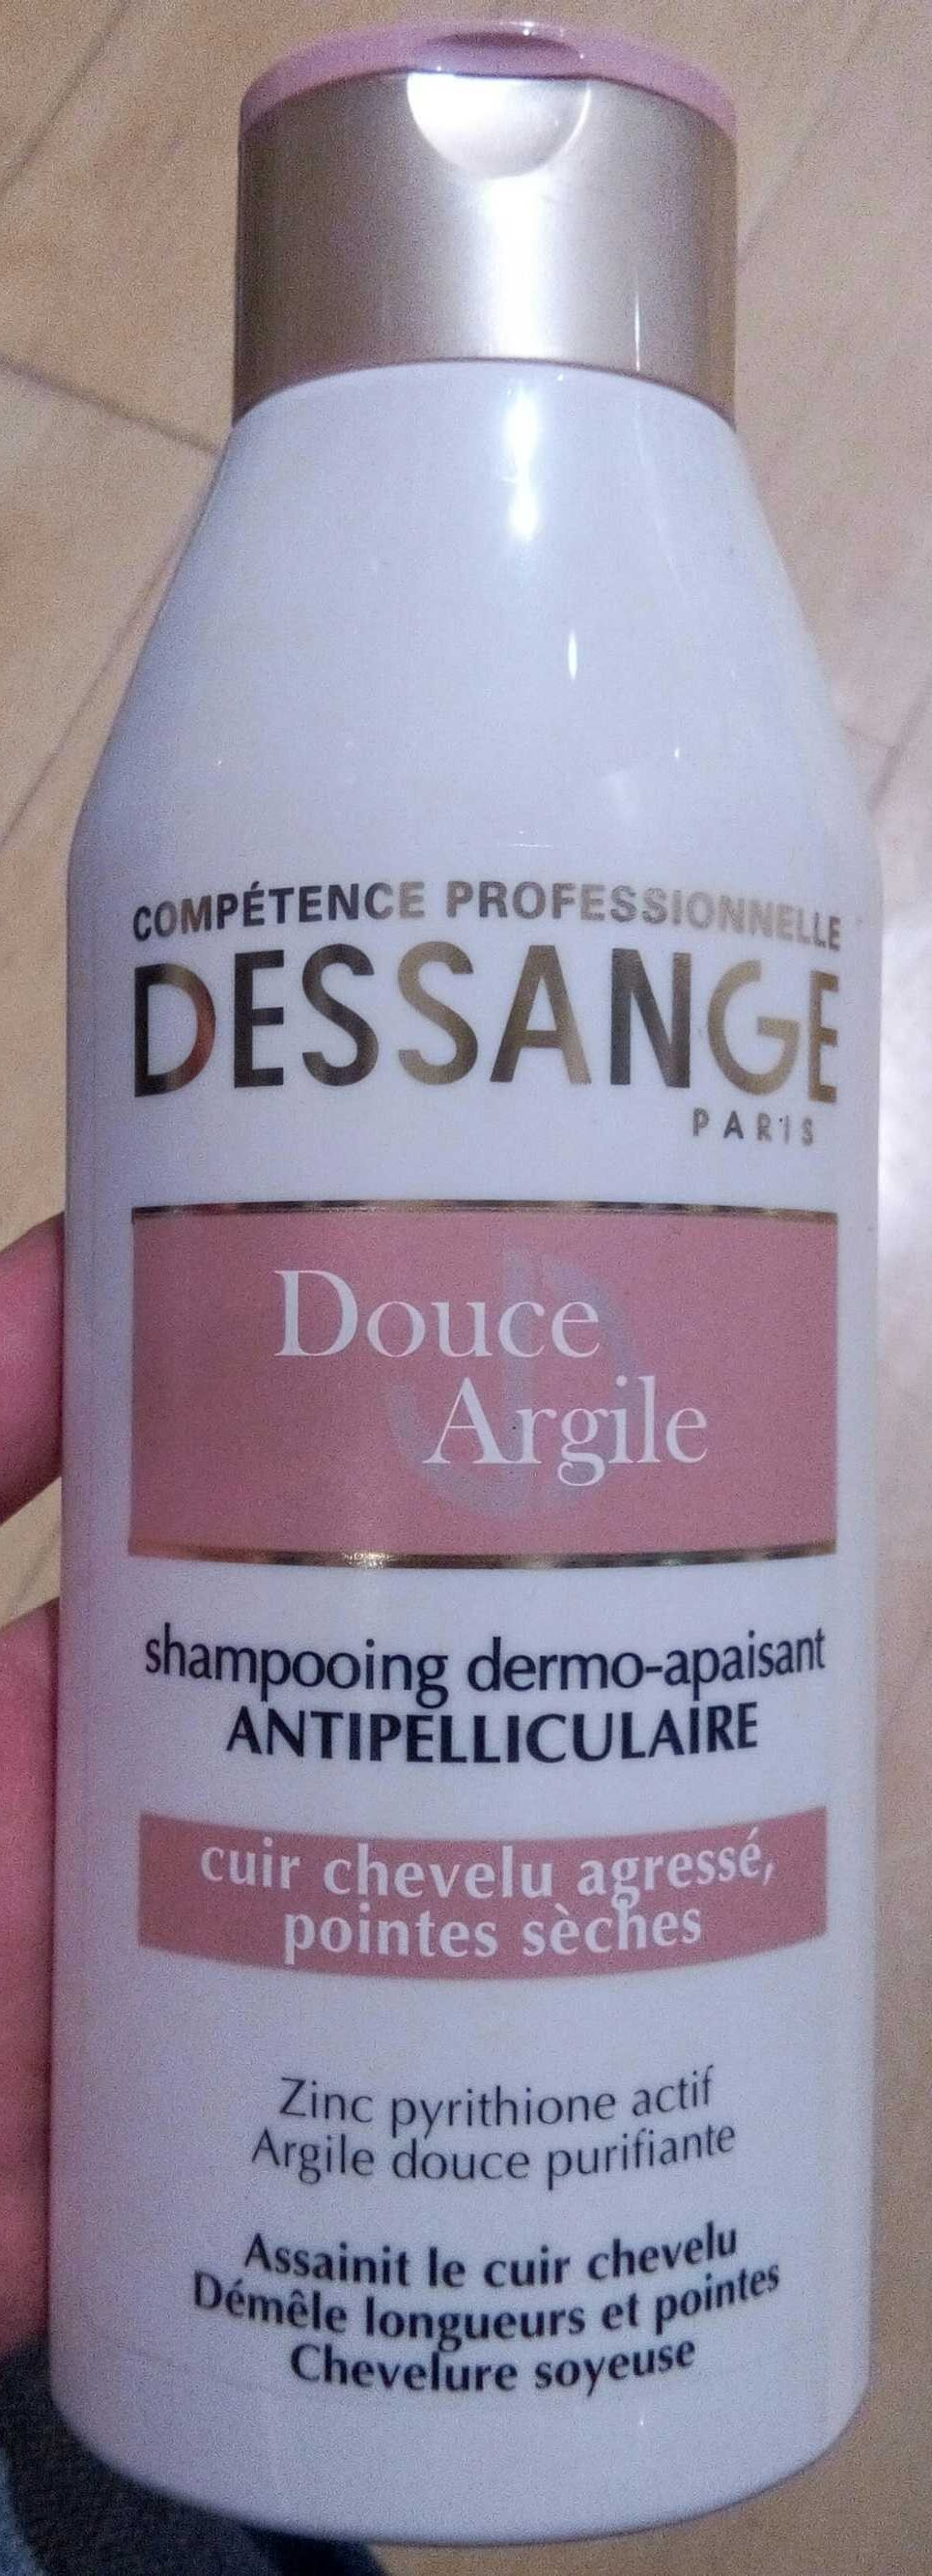 Shampooing dermo-apaisant antipelliculaire - Product - fr